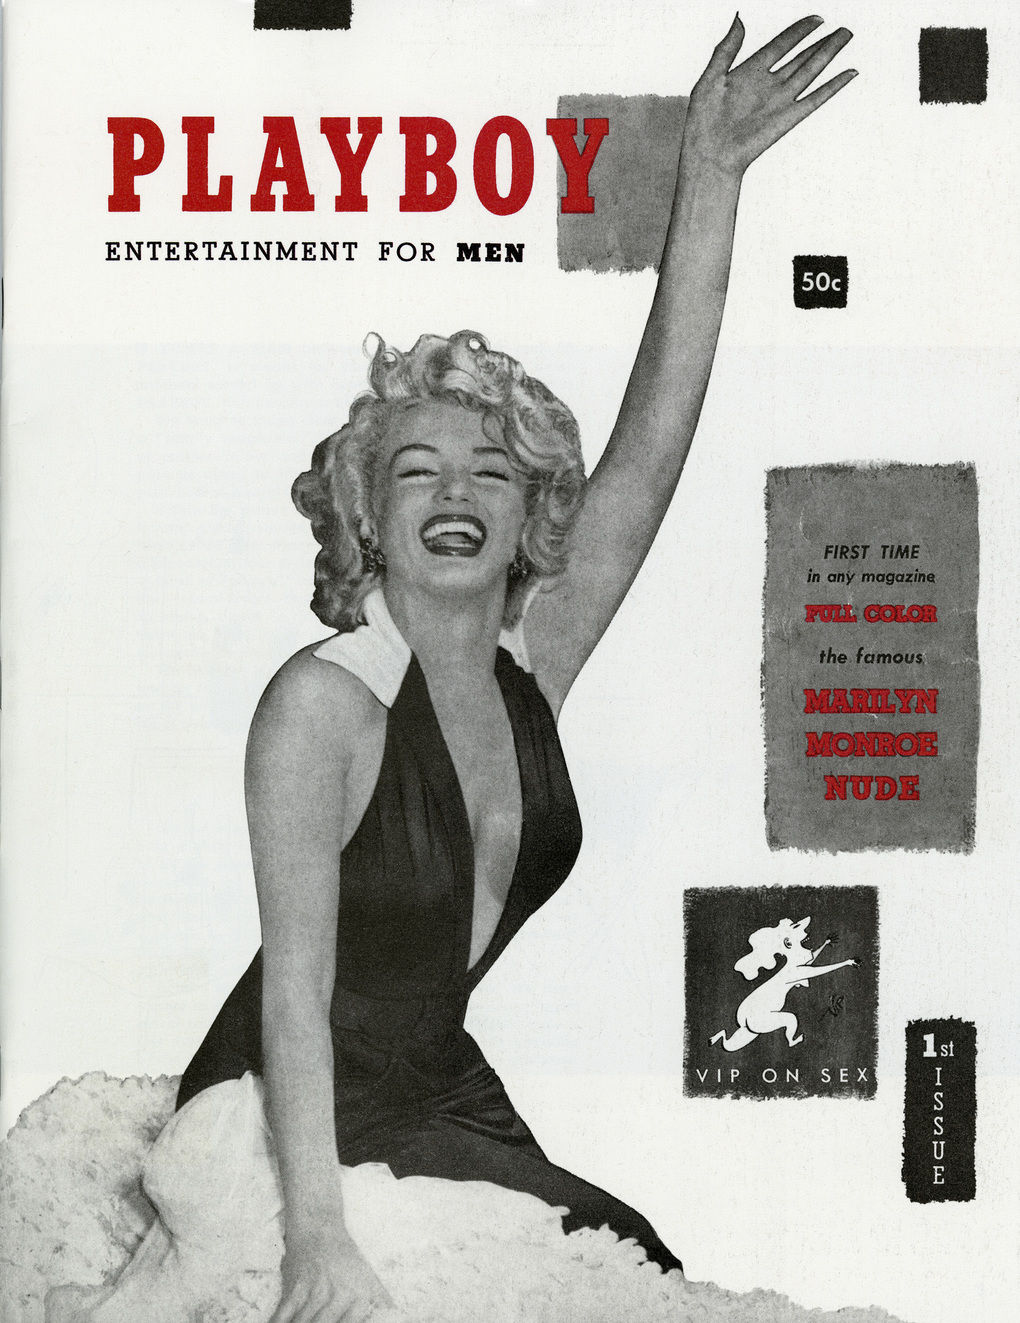 In an undated handout photo, Marilyn Monroe on the cover of Playboy magazine. As part of a redesign that will be unveiled in March 2016, Playboy will still feature women in provocative poses. But they will no longer be fully nude. (Playboy via The New York Times) -- NO SALES; FOR EDITORIAL USE ONLY WITH STORY SLUGGED PLAYBOY NO NUDITY BY RAVI SOMAIYA. ALL OTHER USE PROHIBITED. --